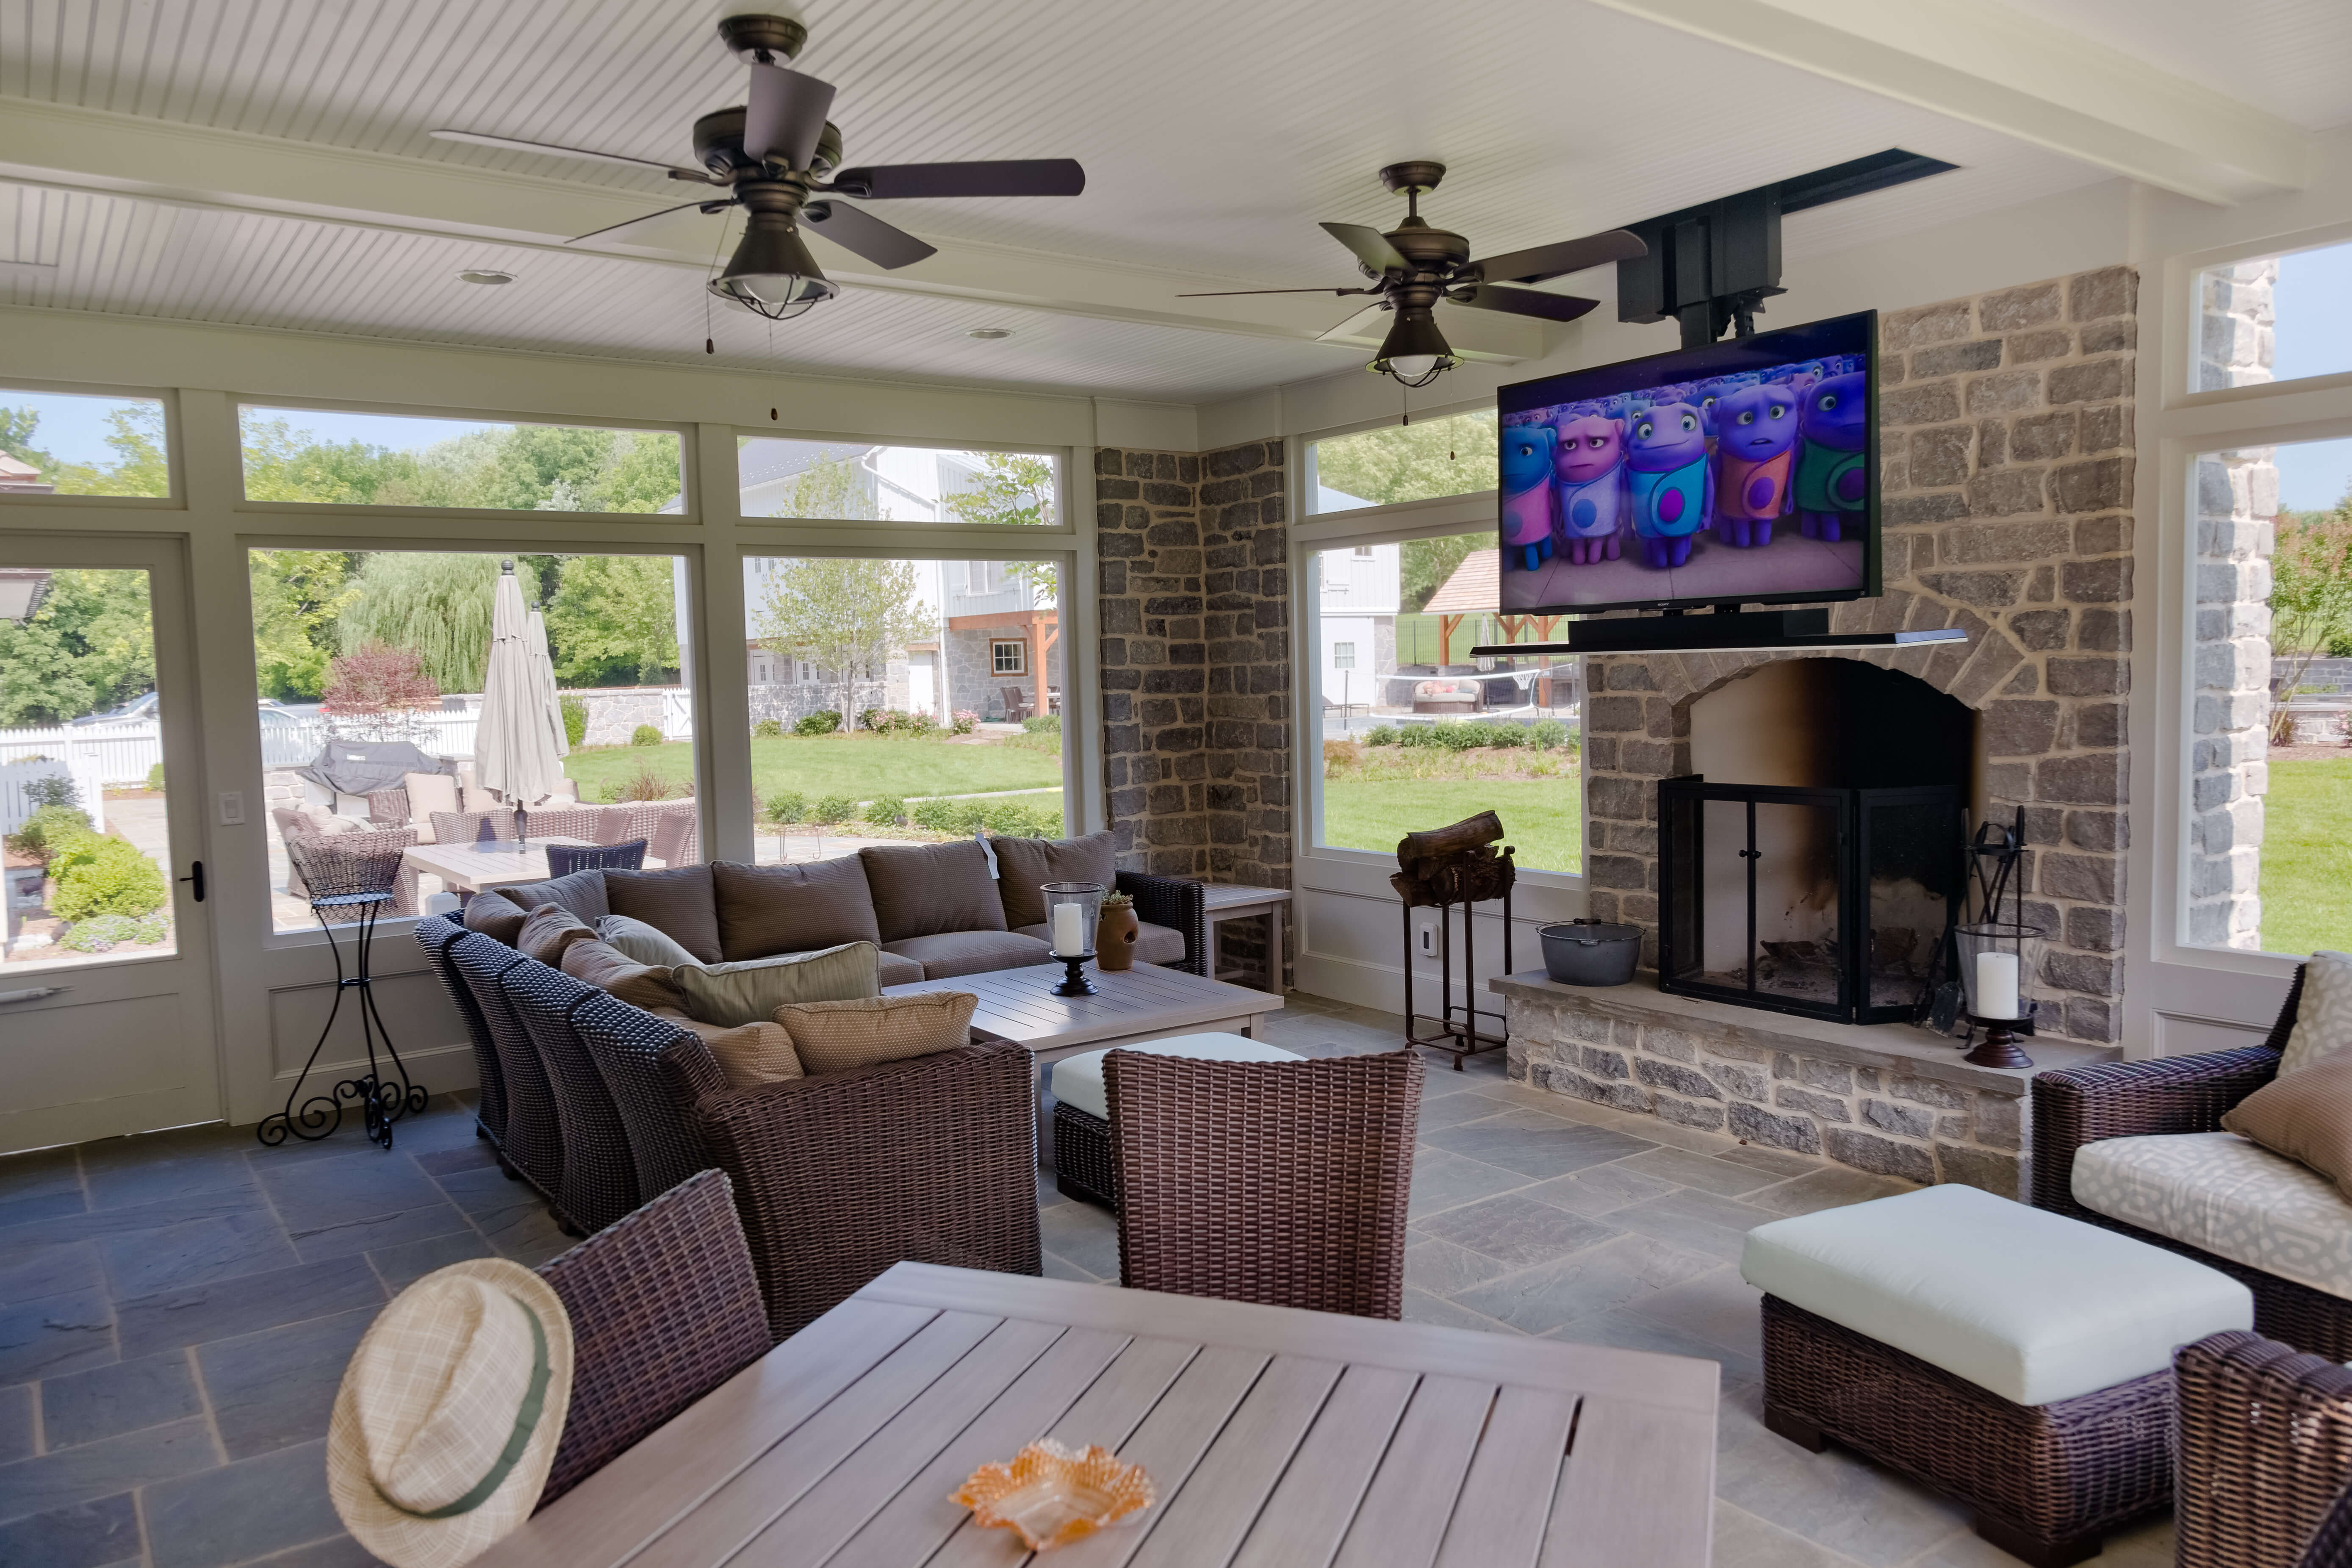 Family room with TV and speakers